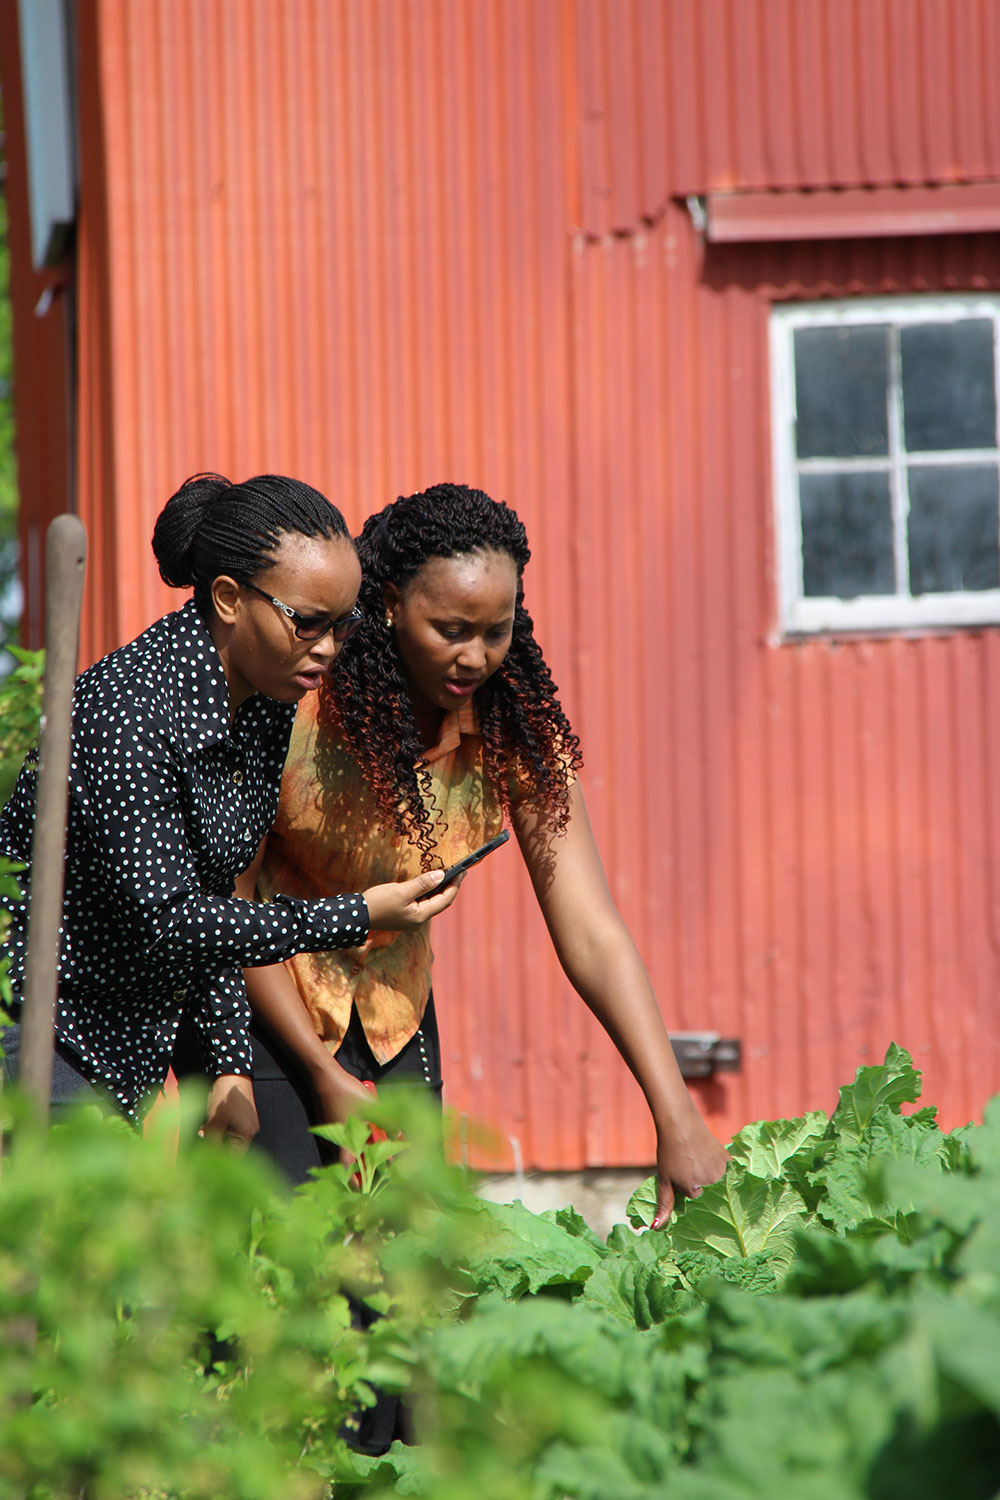 Two African women examine crops, with a large red barn behind them.